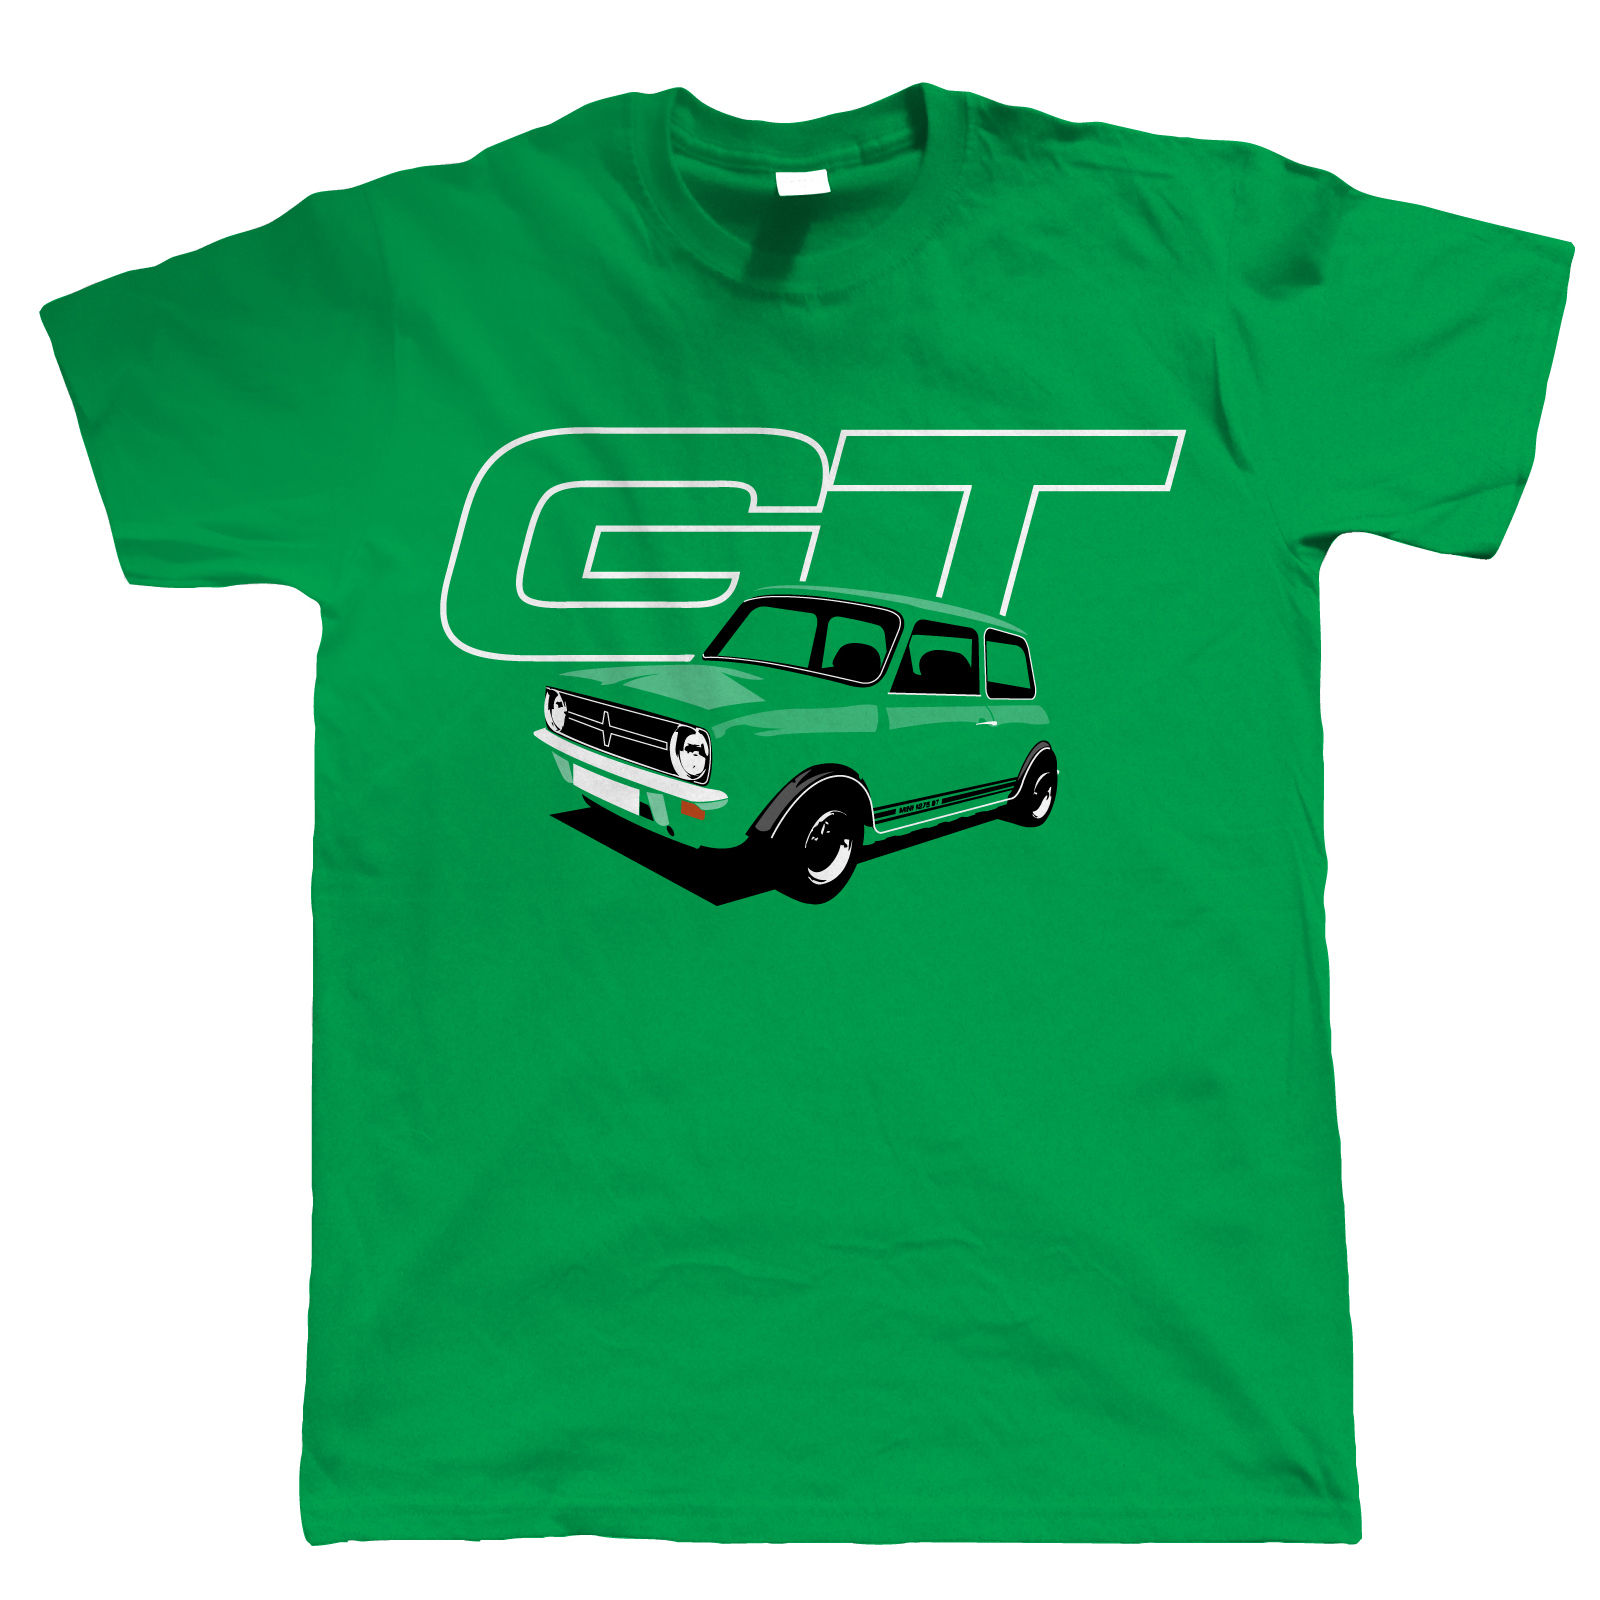 1275 Gt Mens Classic Car T Shirt Clubman Gift For Dad Him